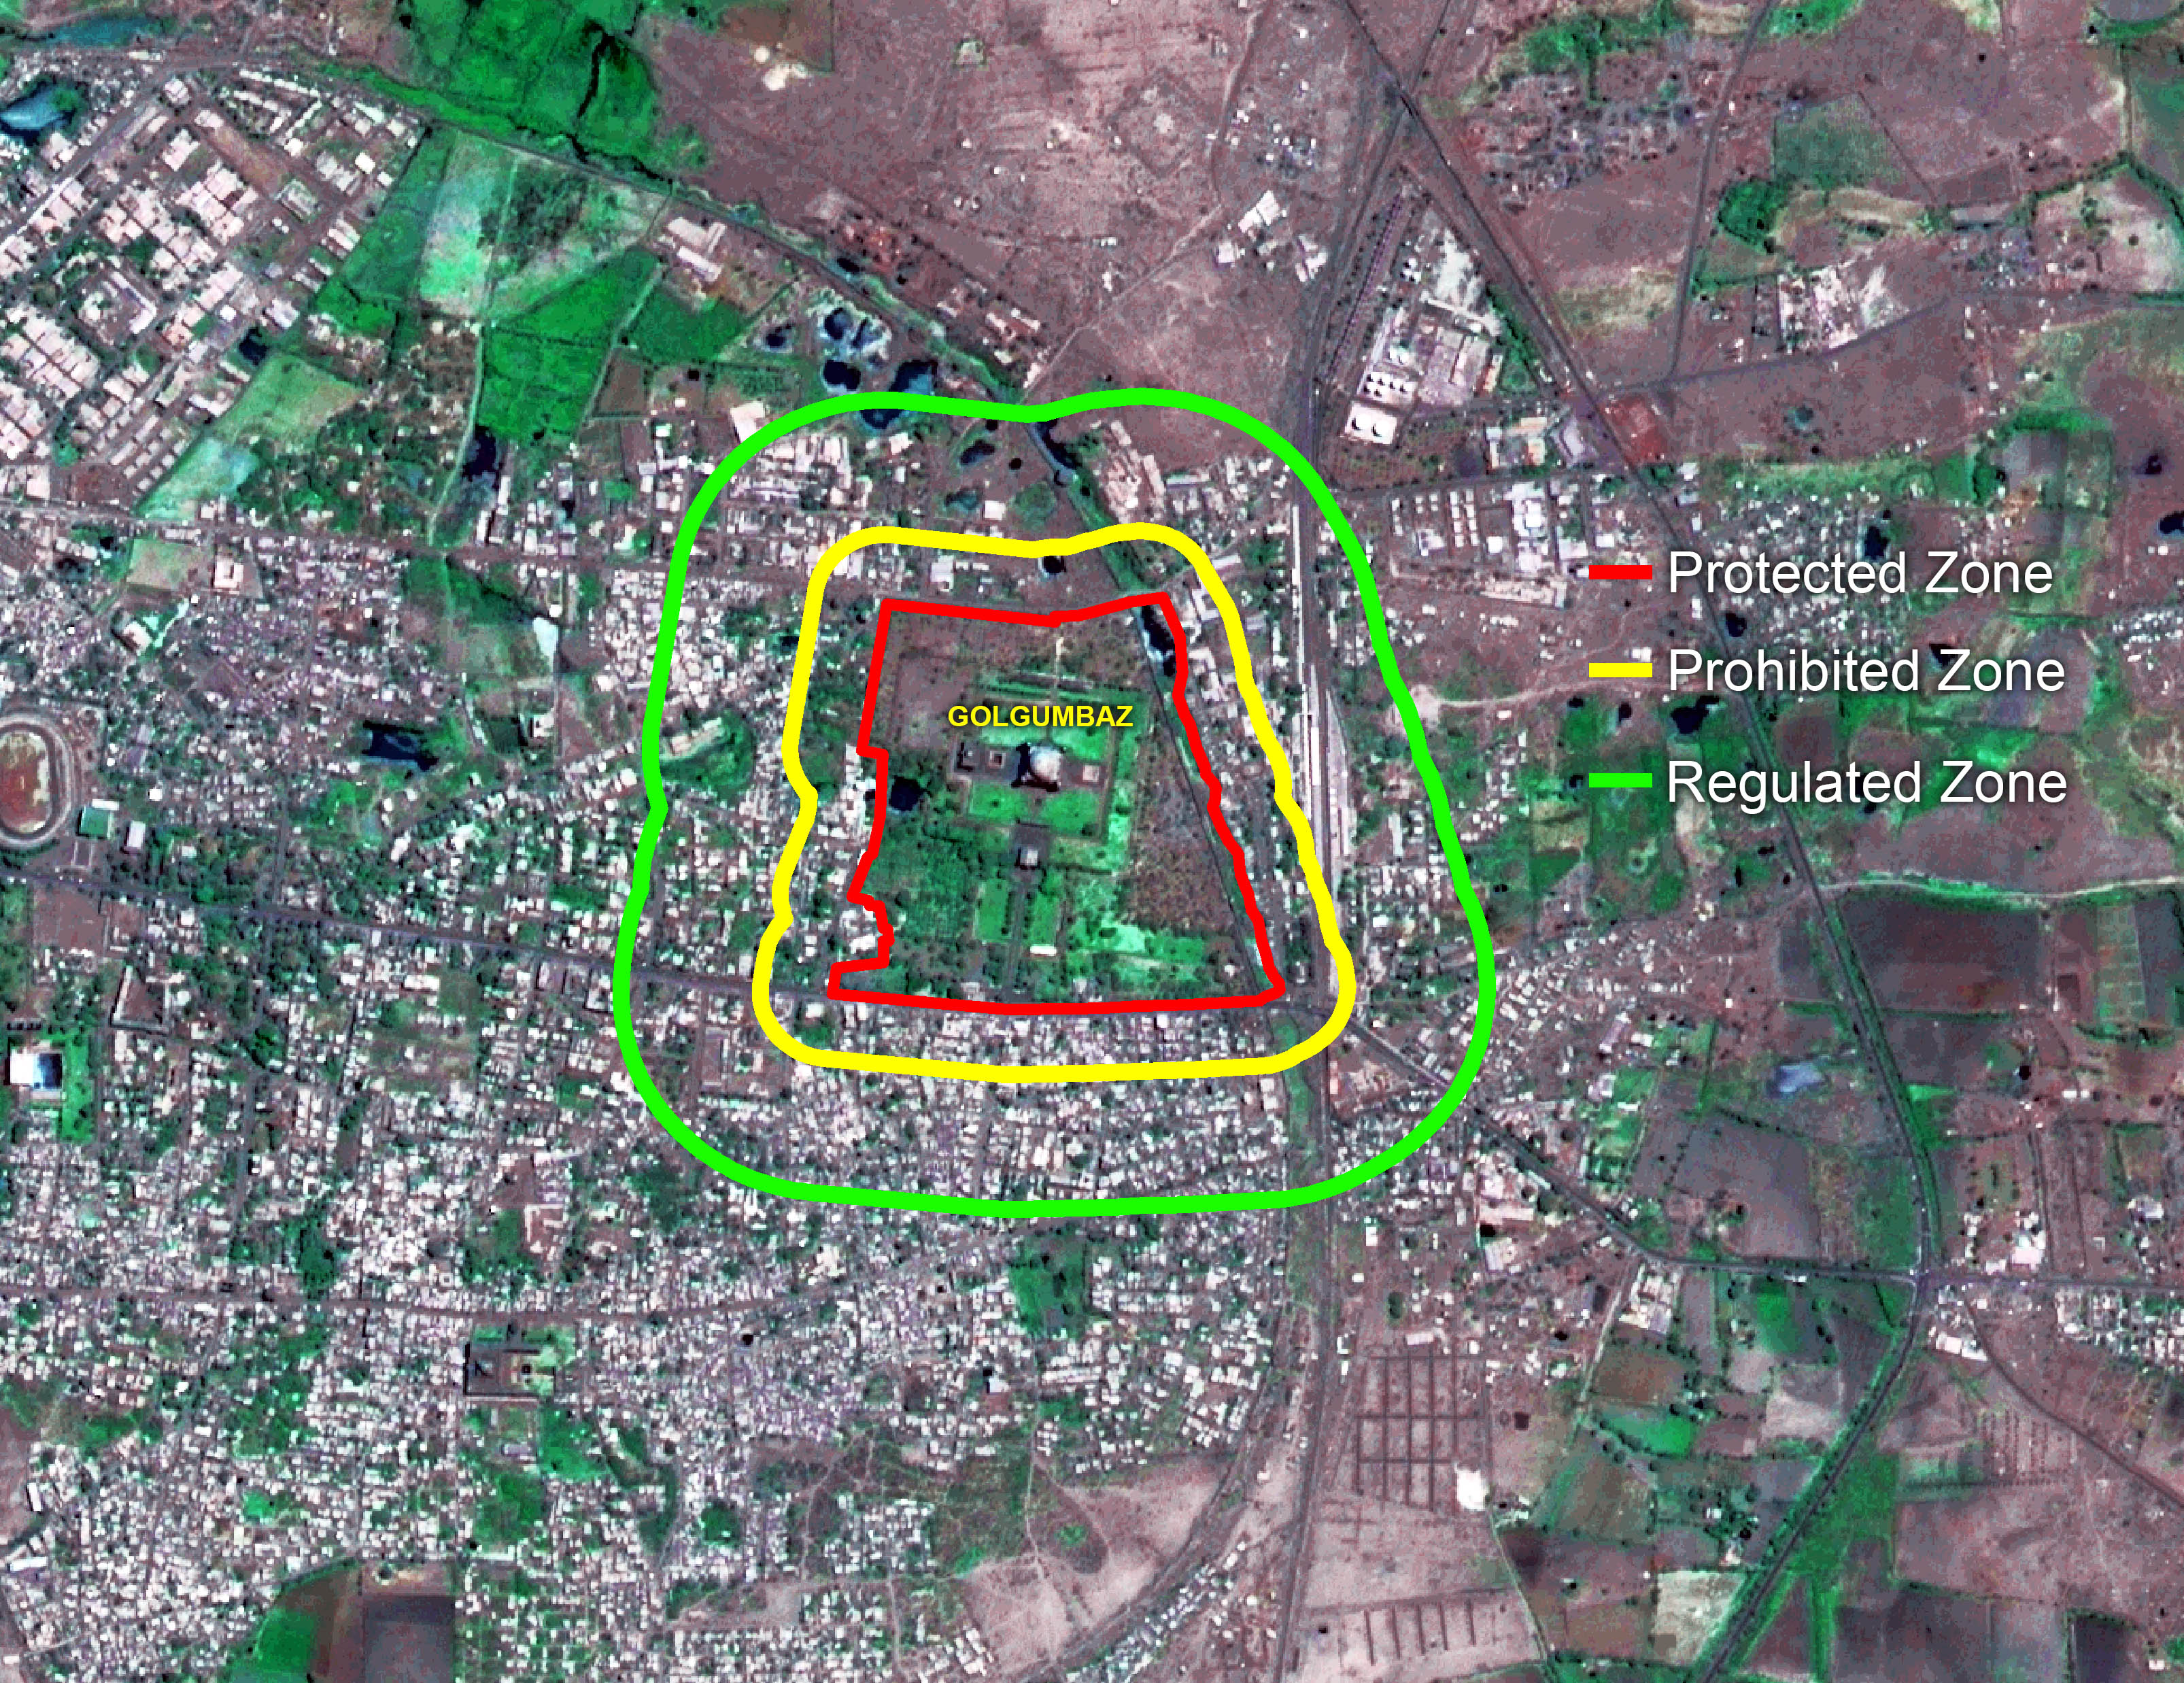 ISRO to map heritage sites in India - Geospatial World